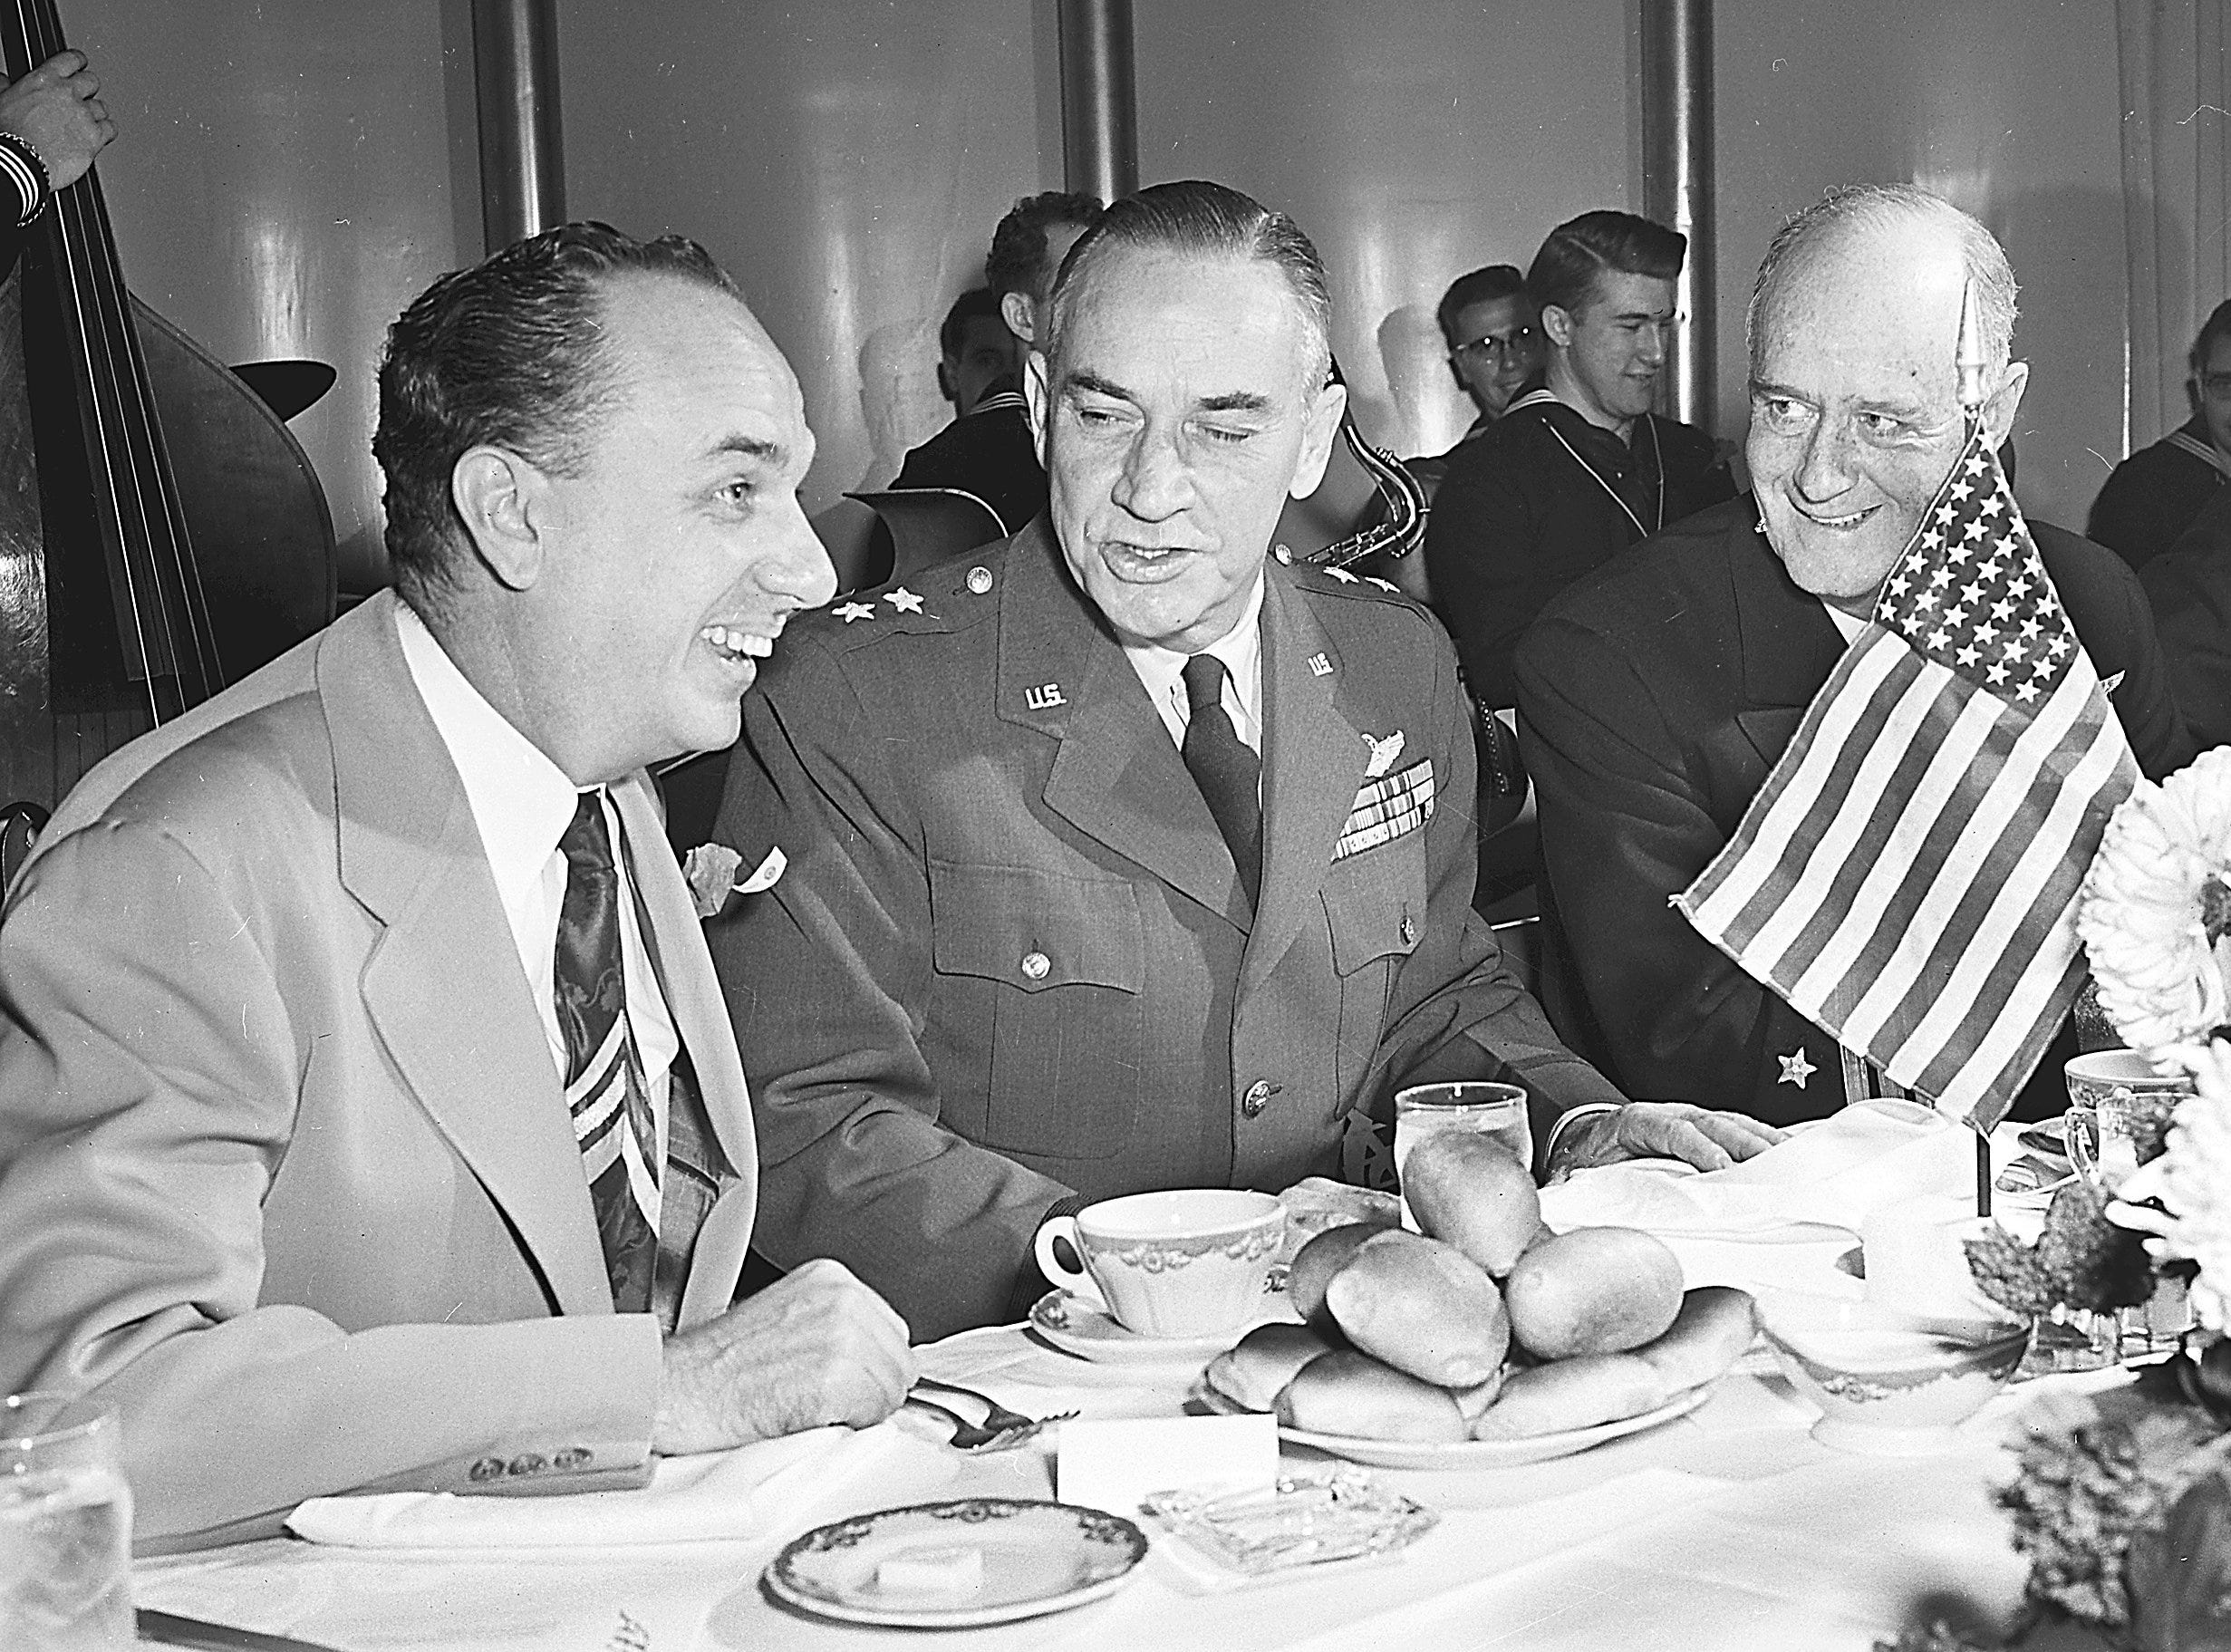 Top-ranking visitors attending the Victory Day luncheon at The Peabody on 11 Nov 1952 were Vice Adm. Felix B. Stump (Right), commander of the Second Fleet and luncheon speaker, and Maj. Gen. Robert W. Douglass Jr. (Center), commander of the 18th Air Force, who were greeted by Judge Carl Stokes, chairman of the American Legion's luncheon committee.